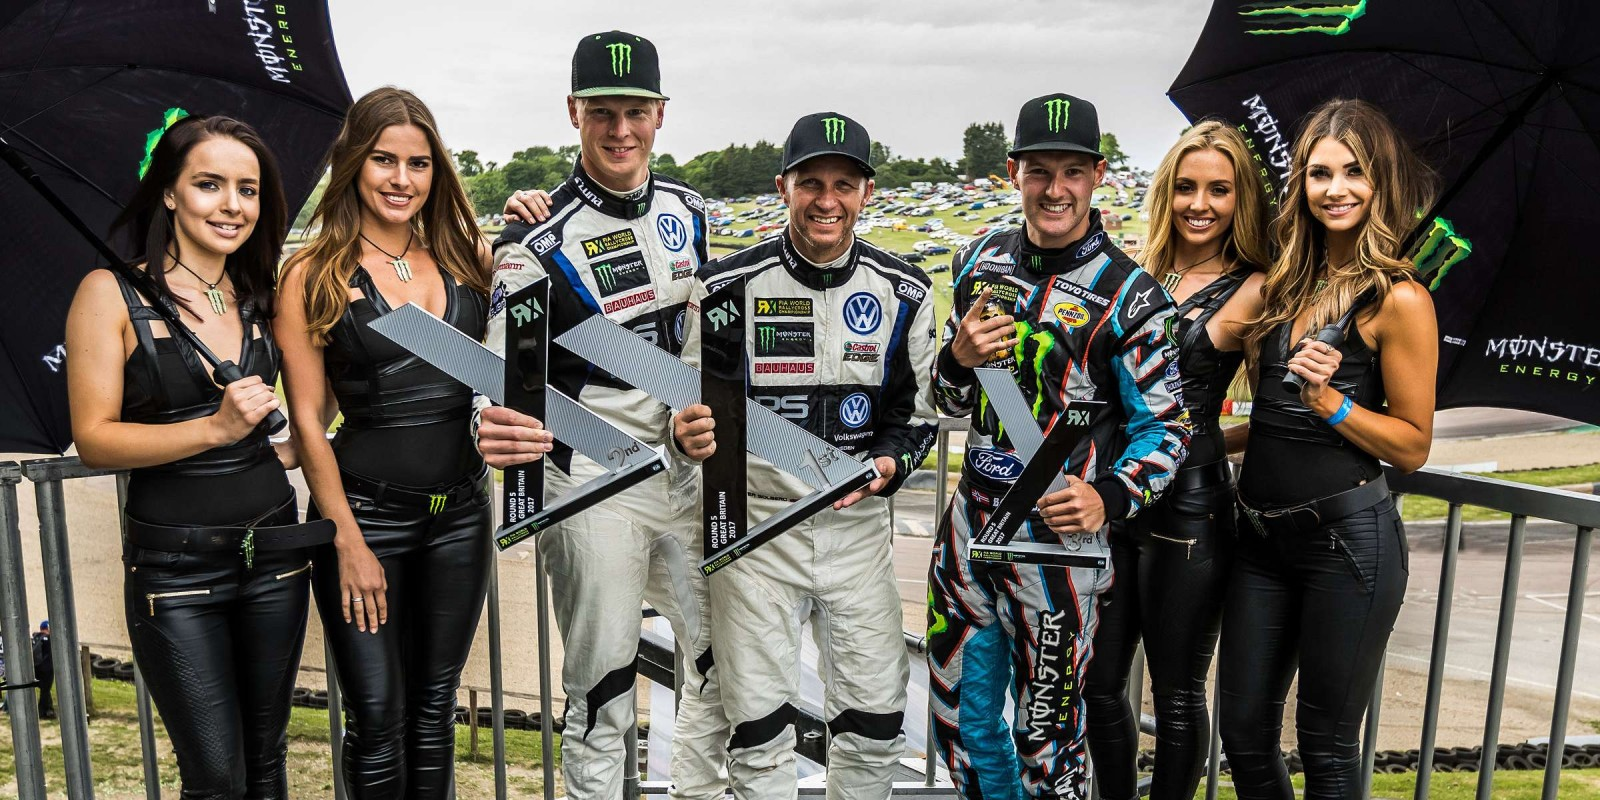 Petter Solberg, Johan Kristoffersson and Andreas Bakkerud celebrating a 1-2-3 result at the 2017 World RX of GB